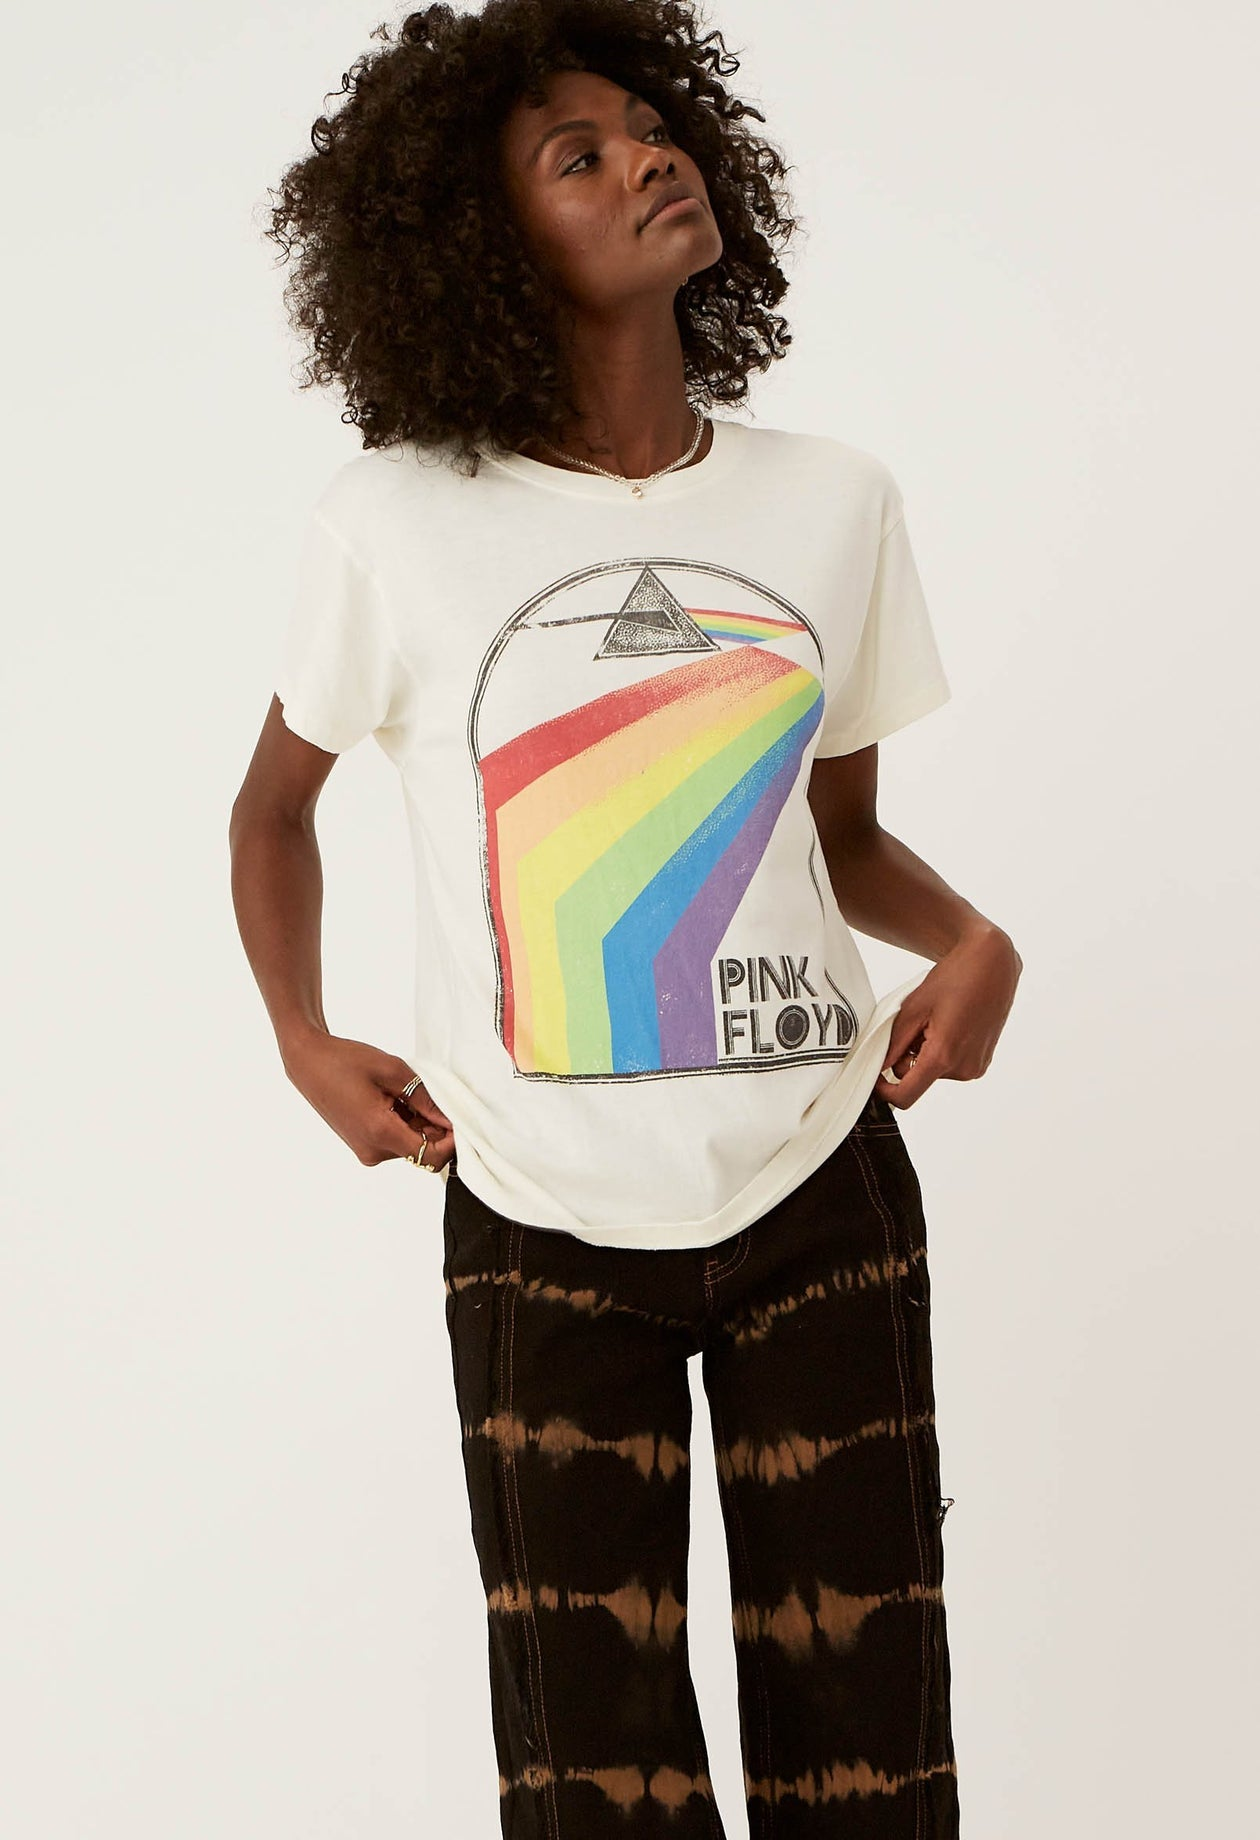 Pink Floyd Retro Rainbow Tour Tee - Stone Vintage | Daydreamer LA - Women's Clothing